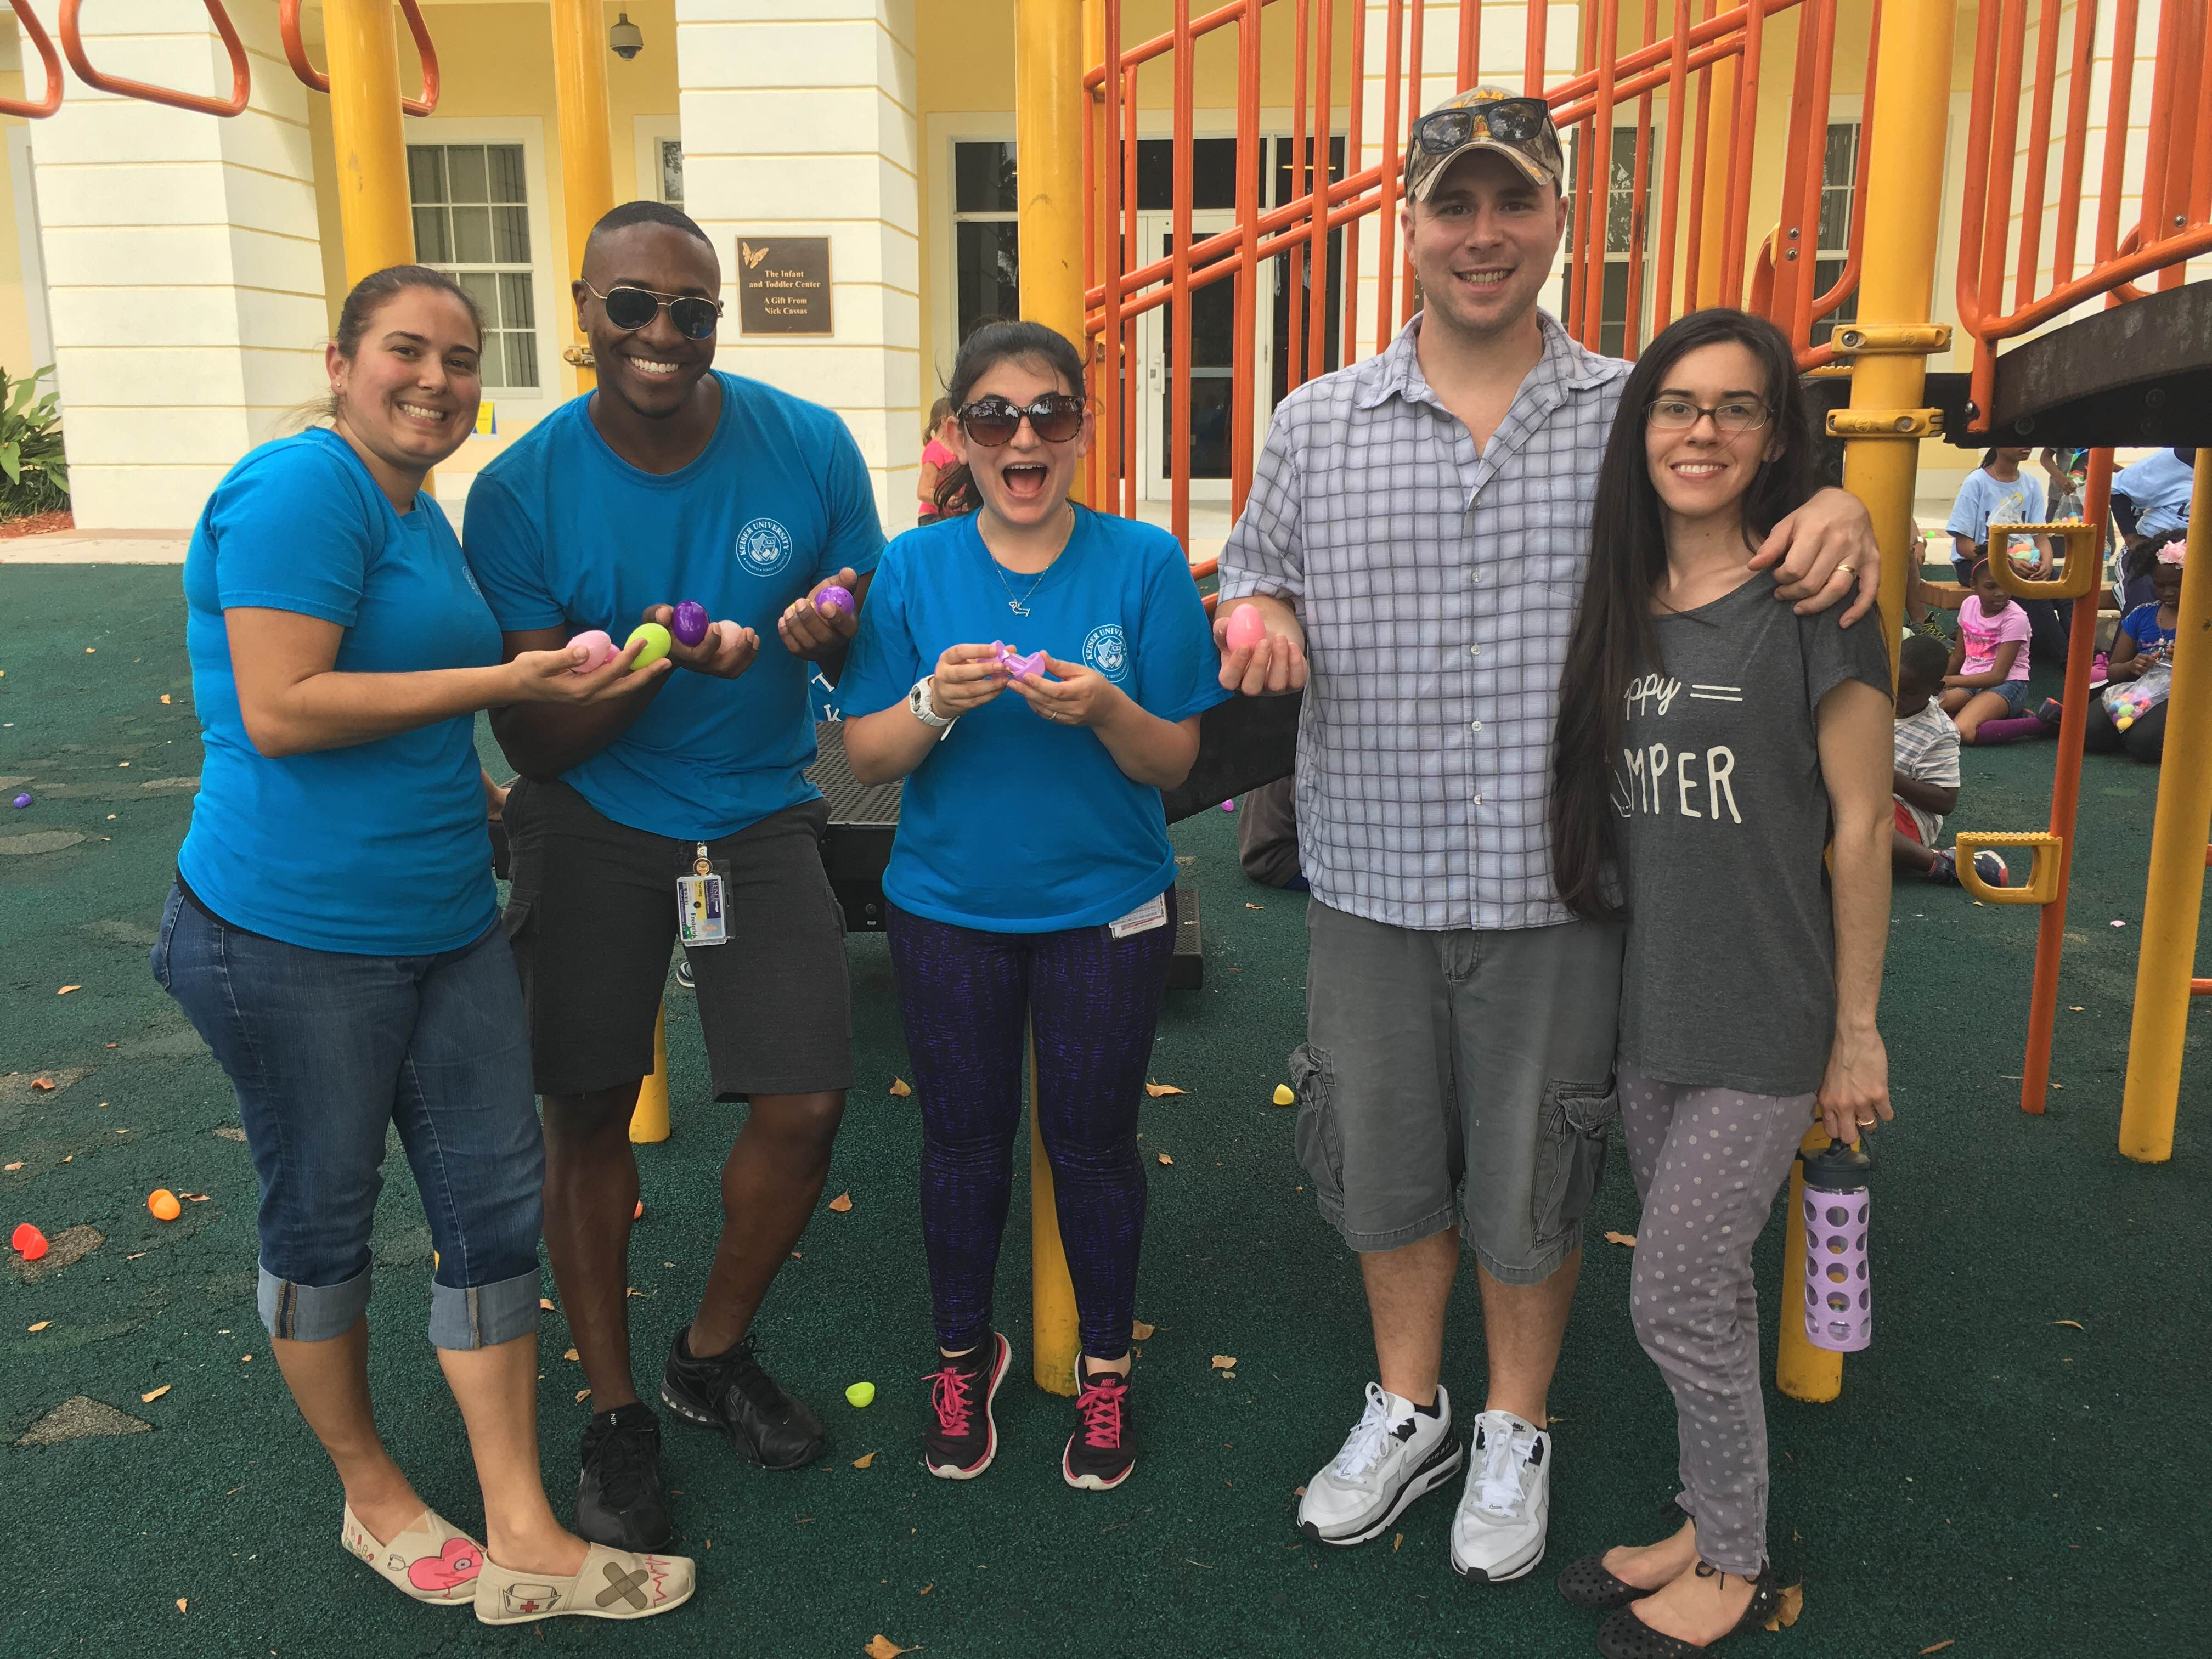 Ft. Lauderdale Students Volunteer Time with Kids in Distress